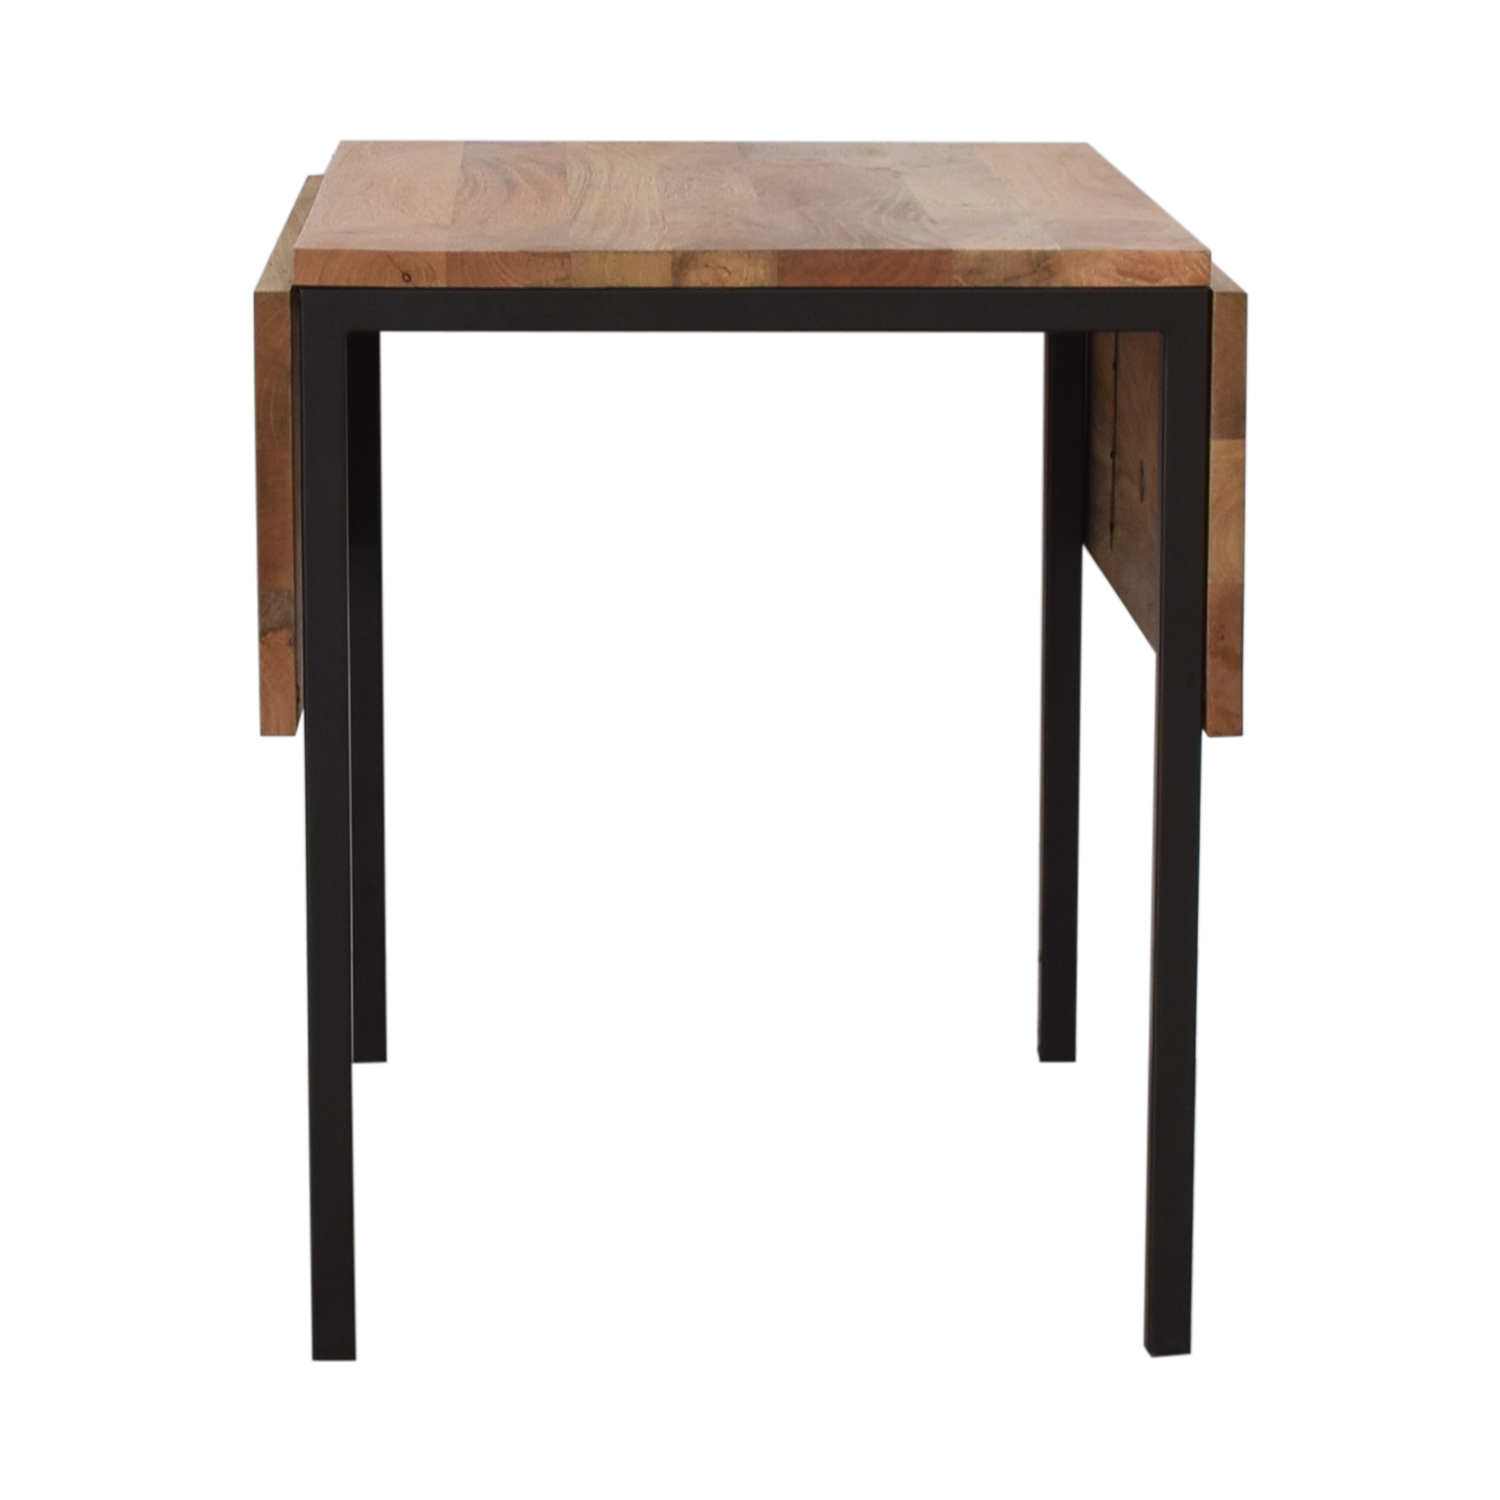 West Elm Raw Mango Drop Leaf Dining Table / Dinner Tables